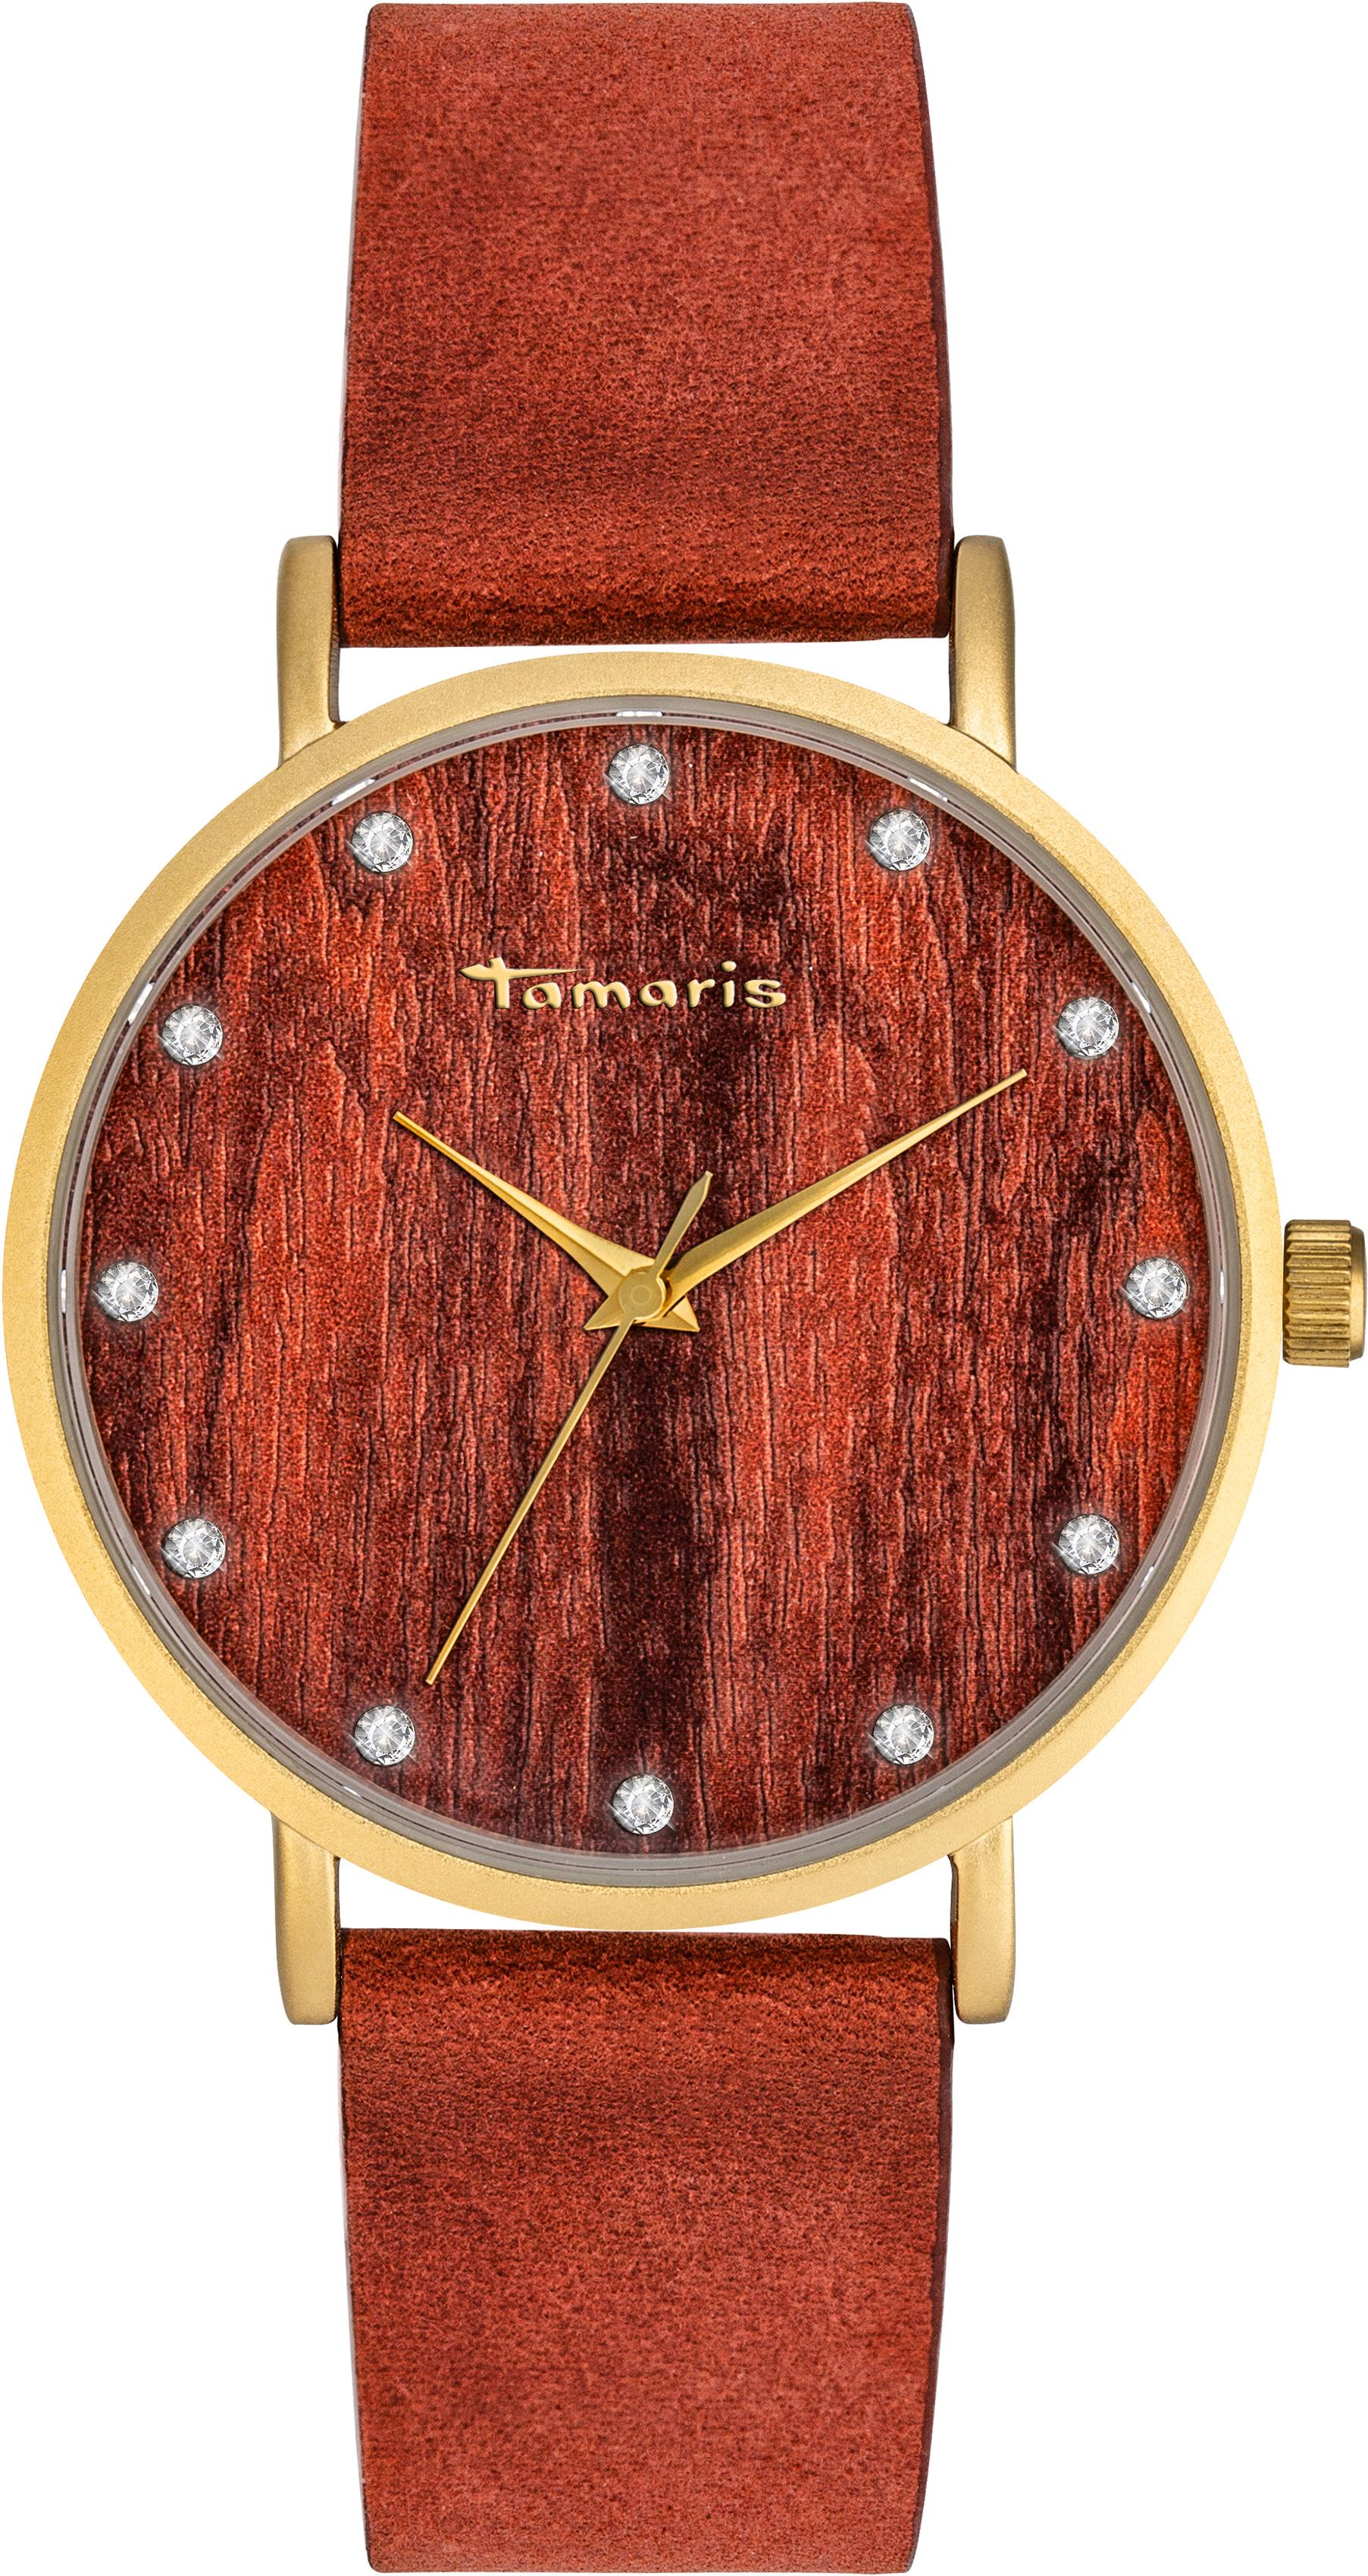 Tamaris Quarzuhr Alva wood gold, TW032 | Uhren > Quarzuhren | tamaris